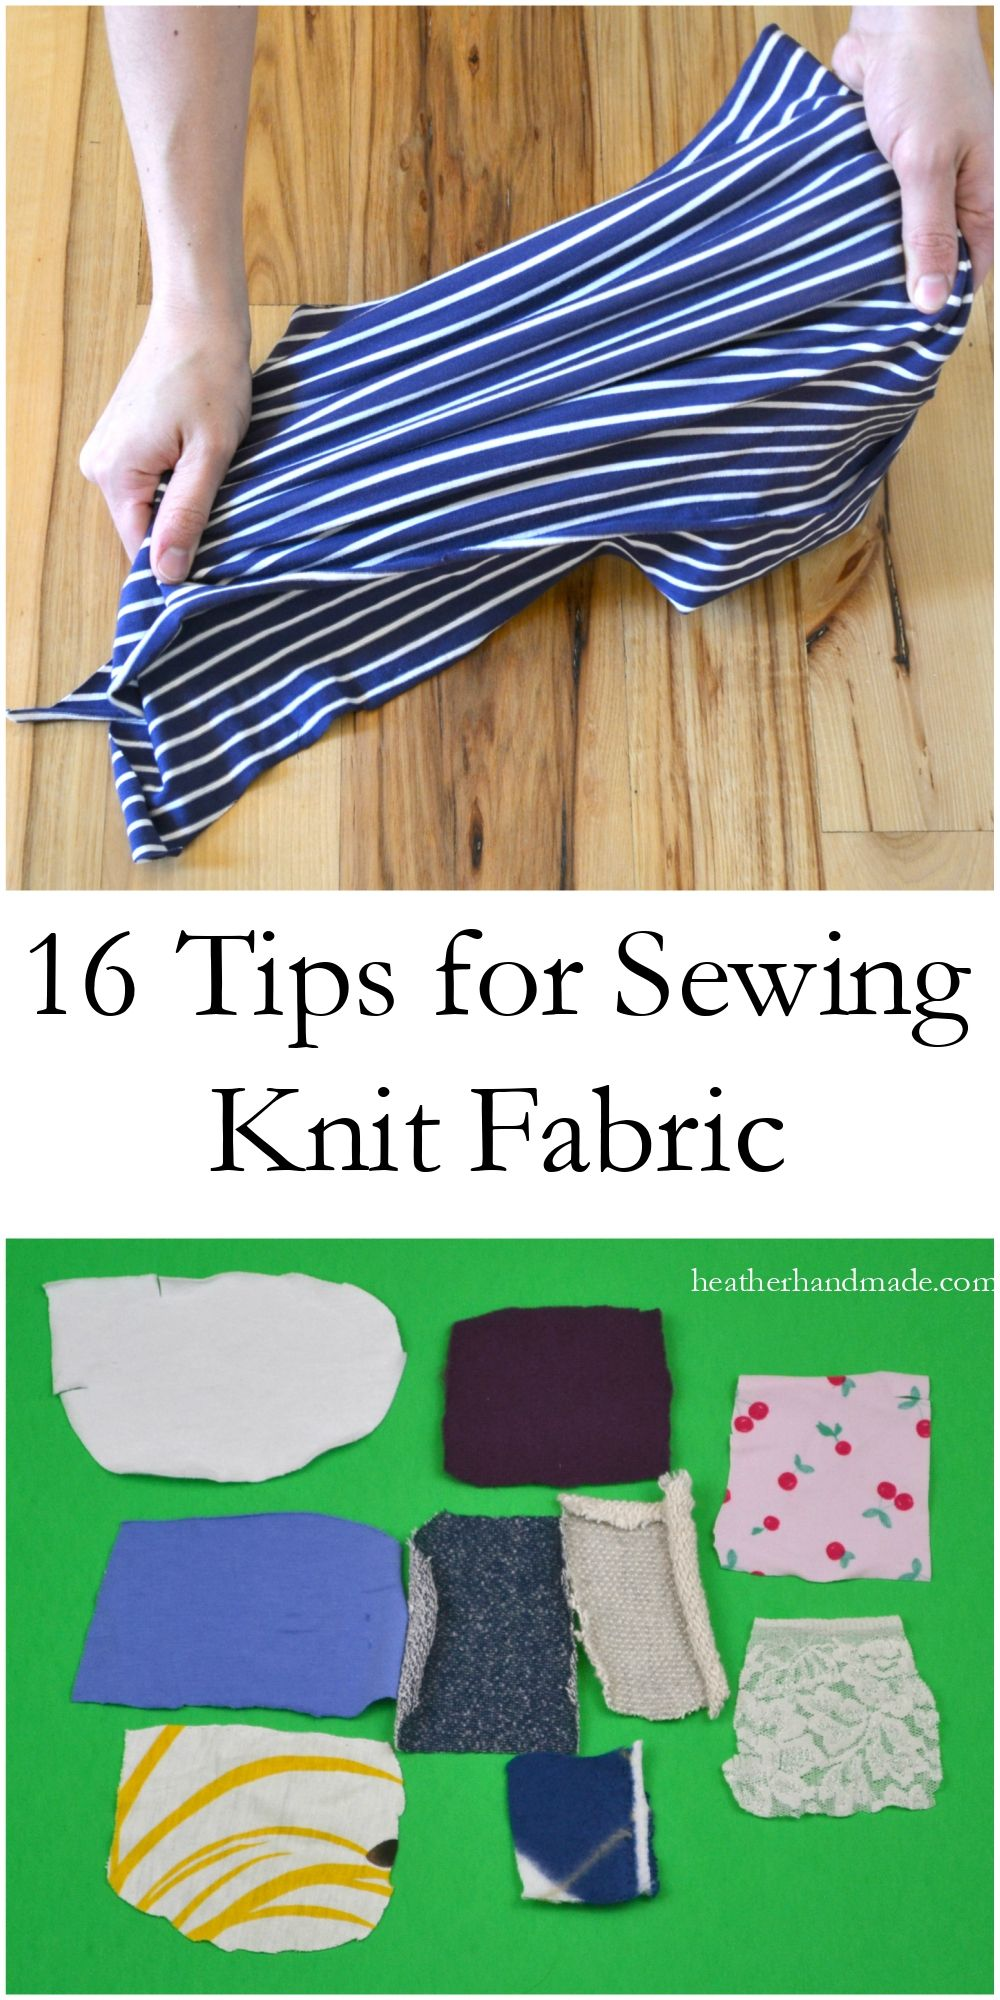 849b89921a33 Sewing knit fabric can be a little intimidating unless you know some simple  tips and tricks